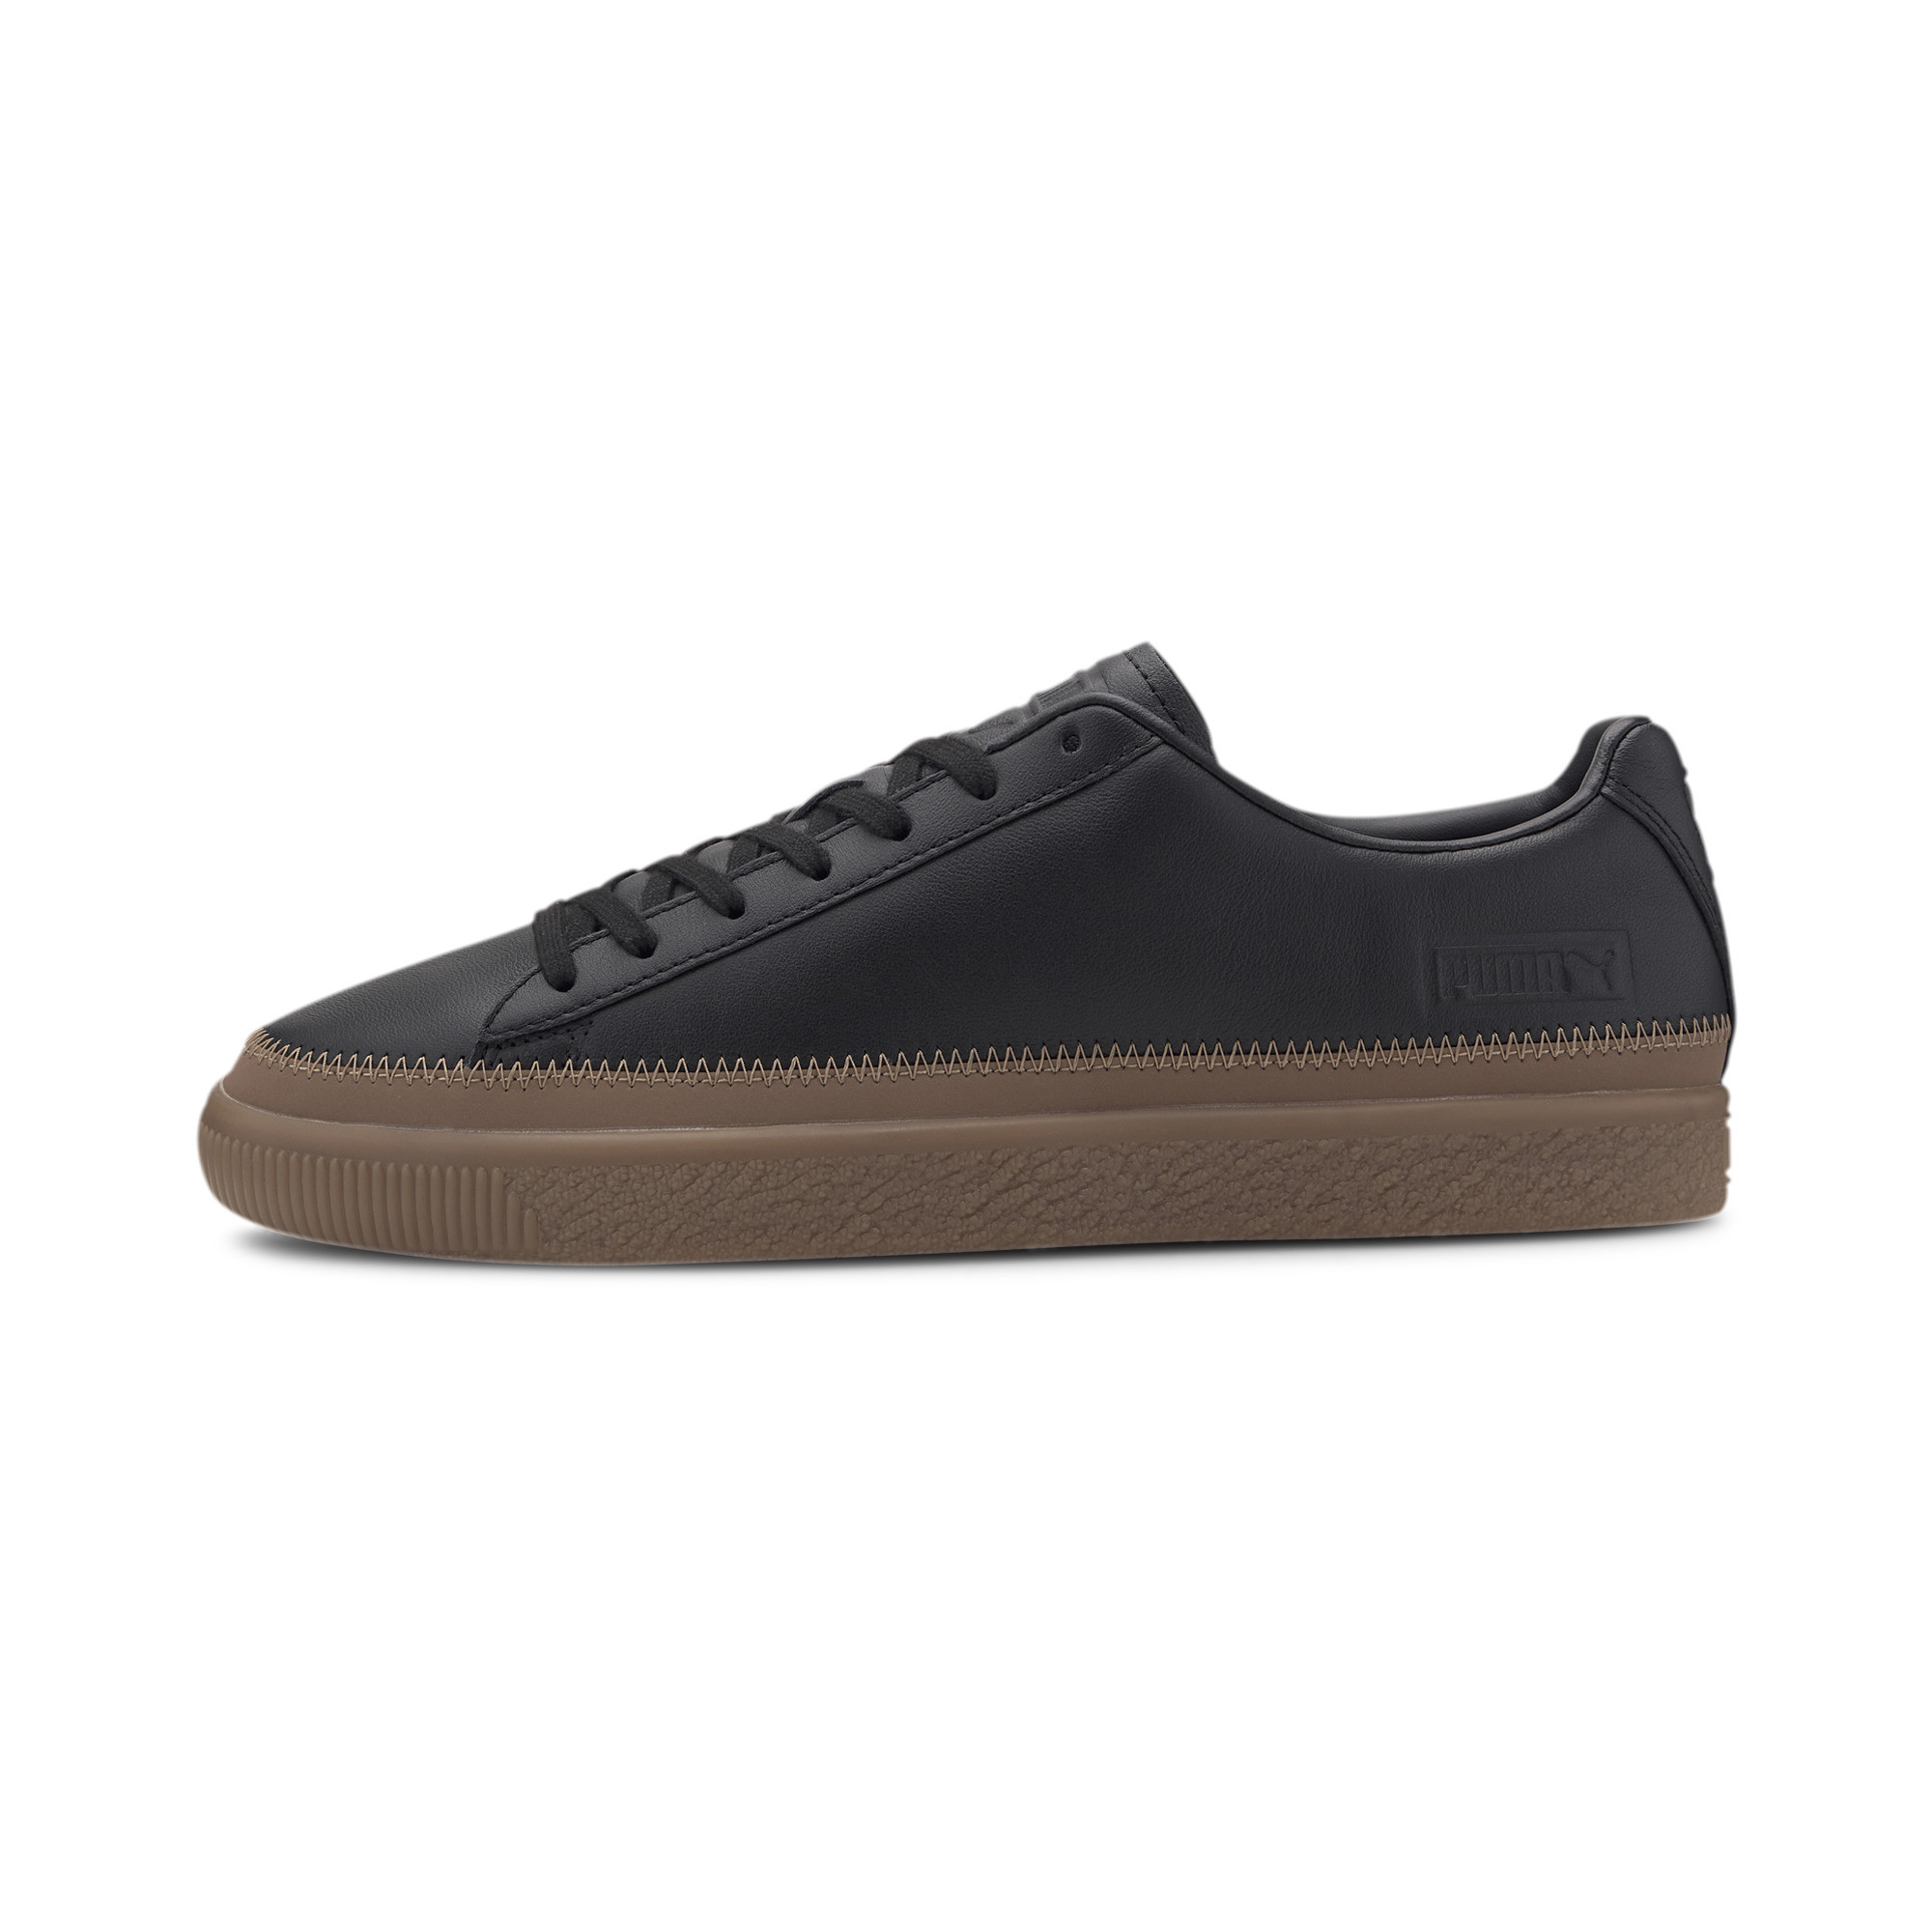 PUMA-Men-039-s-Basket-Trim-PRM-Sneakers thumbnail 4